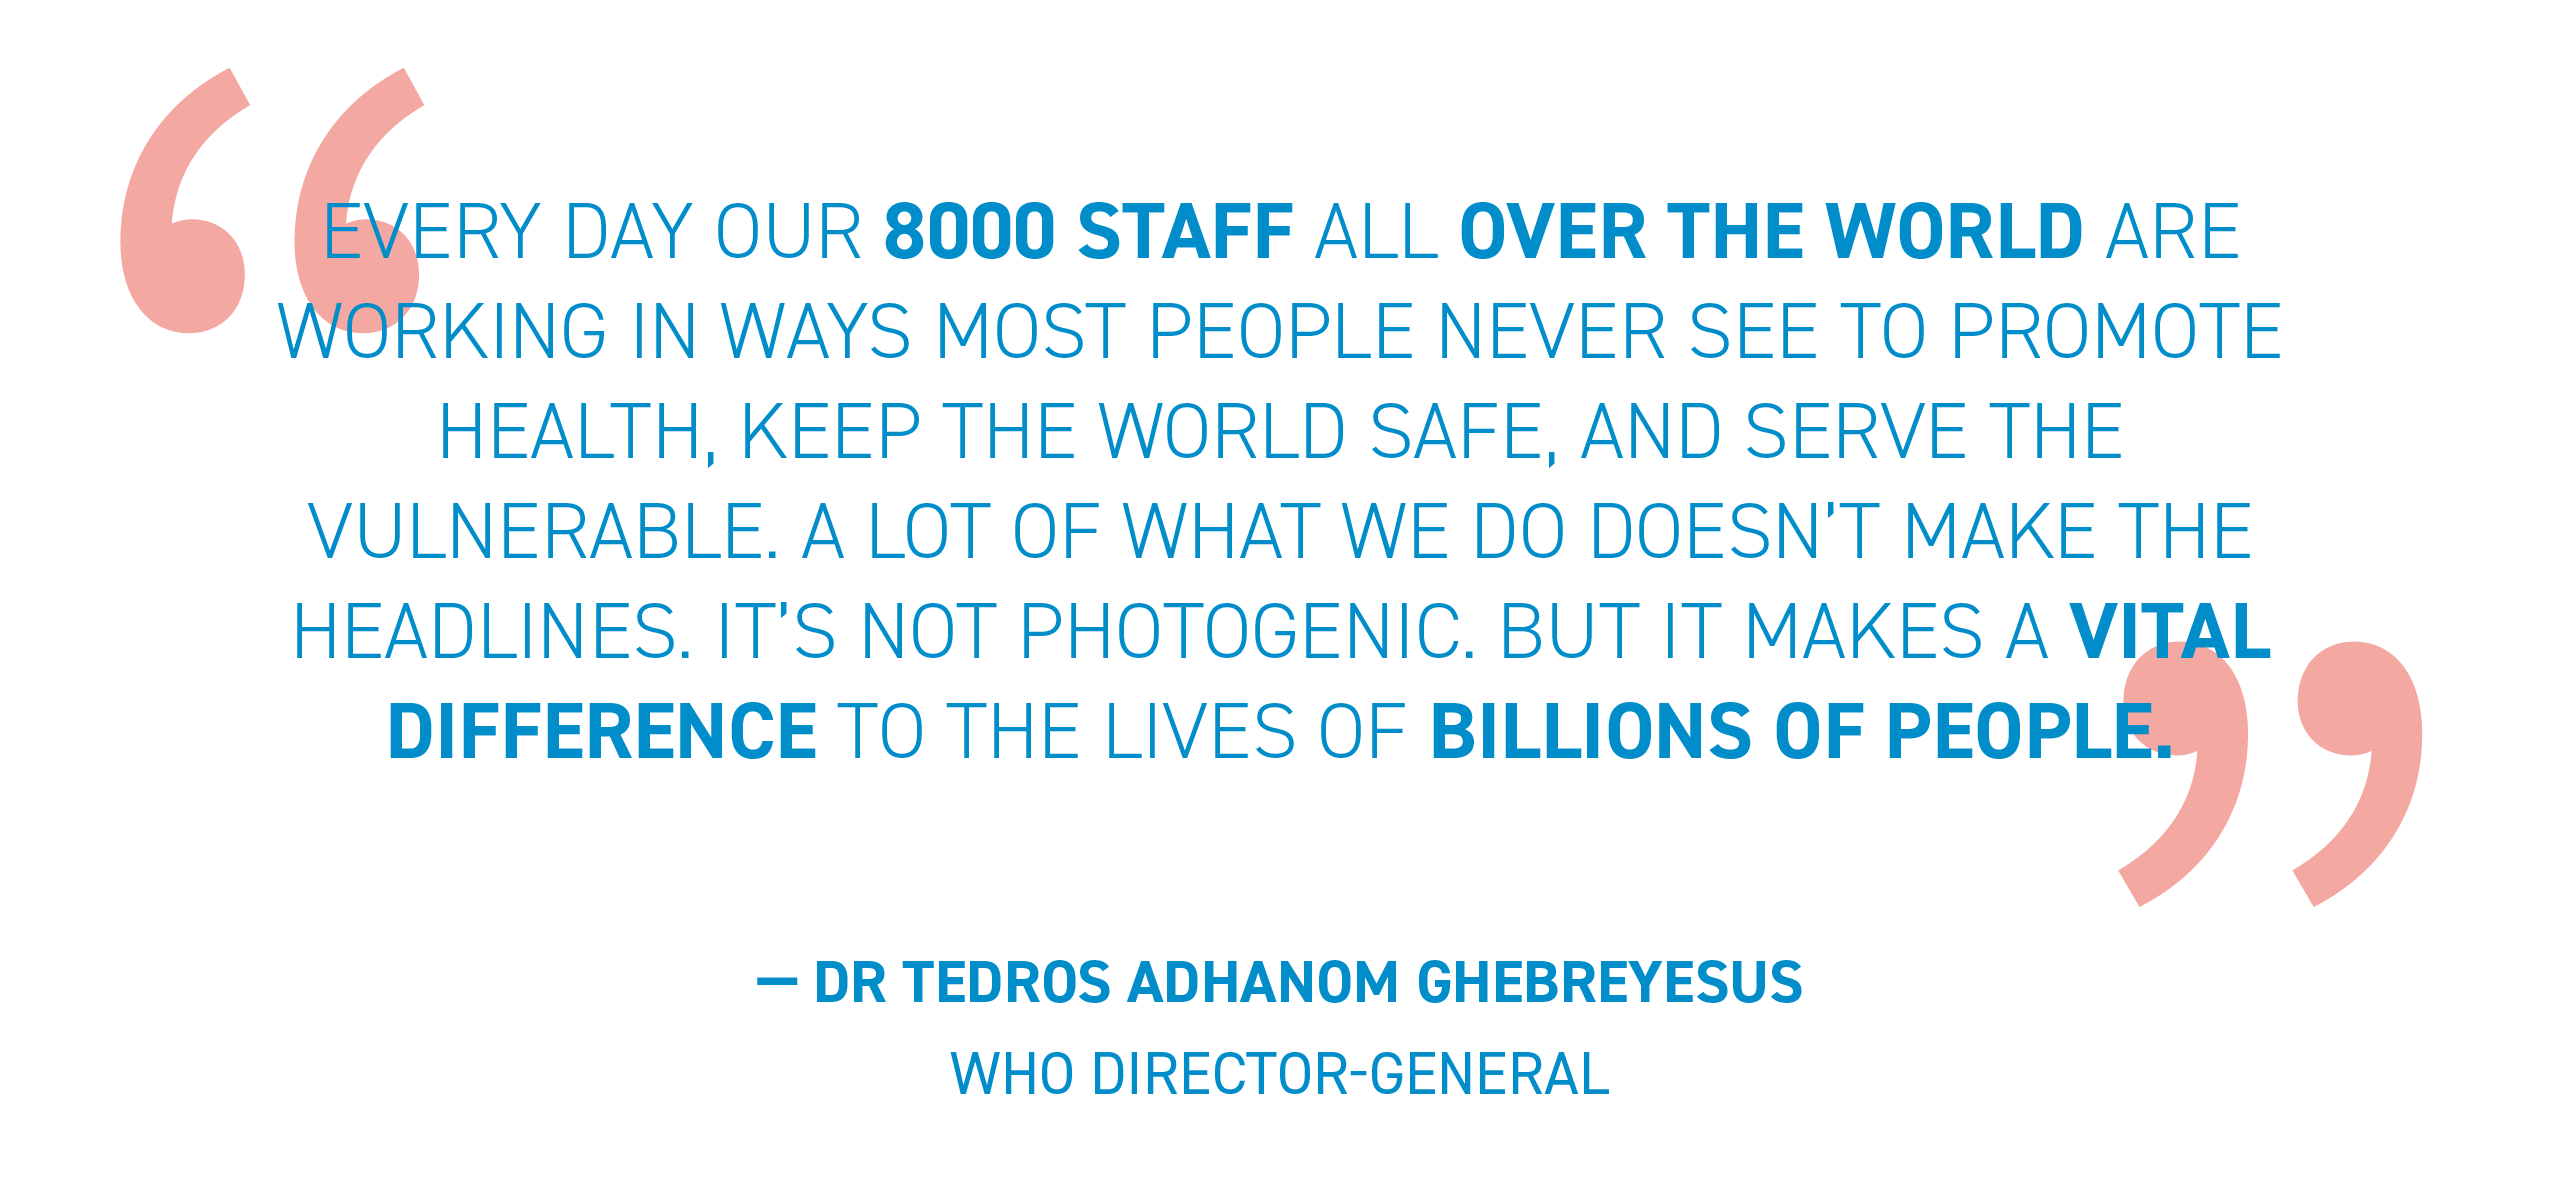 """WHO Director-General quote: """"…Our 8000 staff are working… to promote health, keep the world safe and serve the vulnerable..."""""""